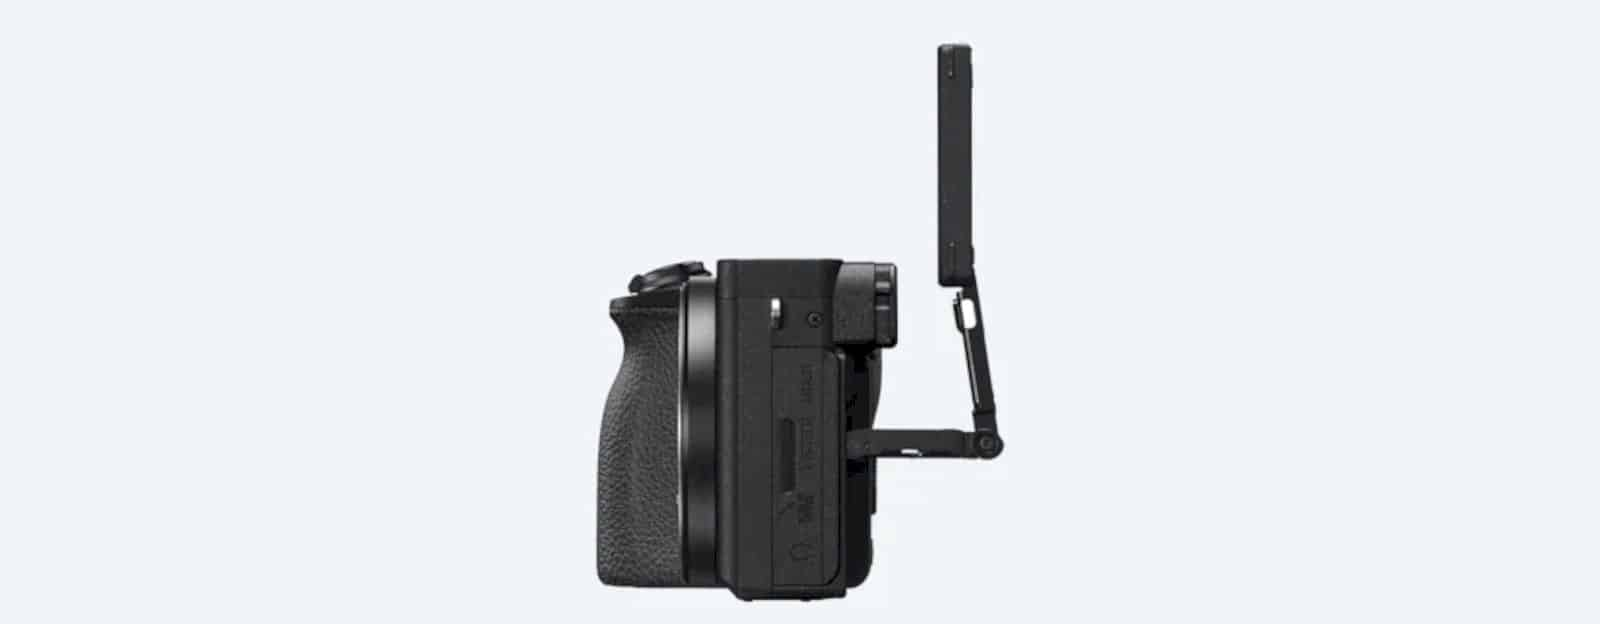 SONY α6600 APS-C Camera: A full-fledged toolkit for your imagination